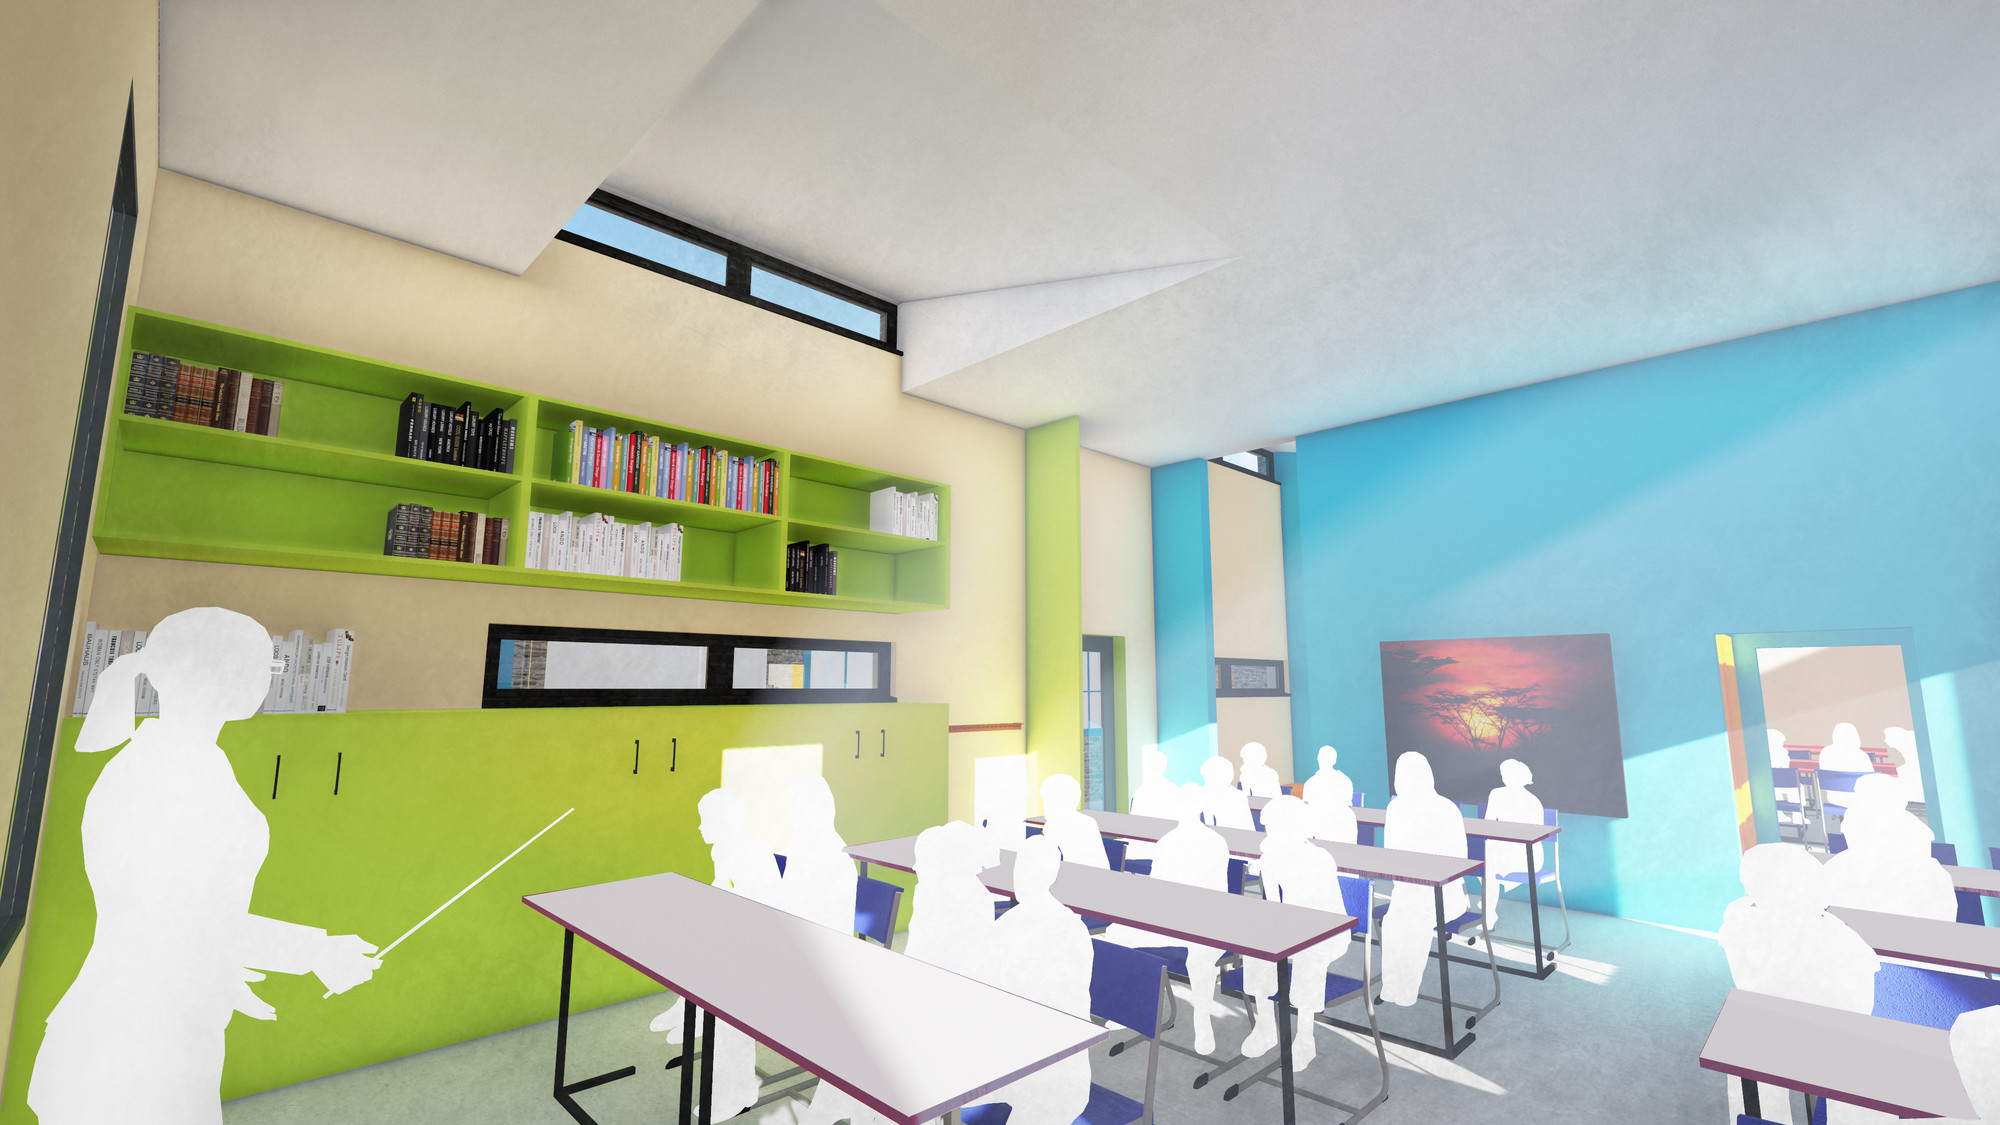 Classroom Design For The Blind ~ Place by design wins cool school competition